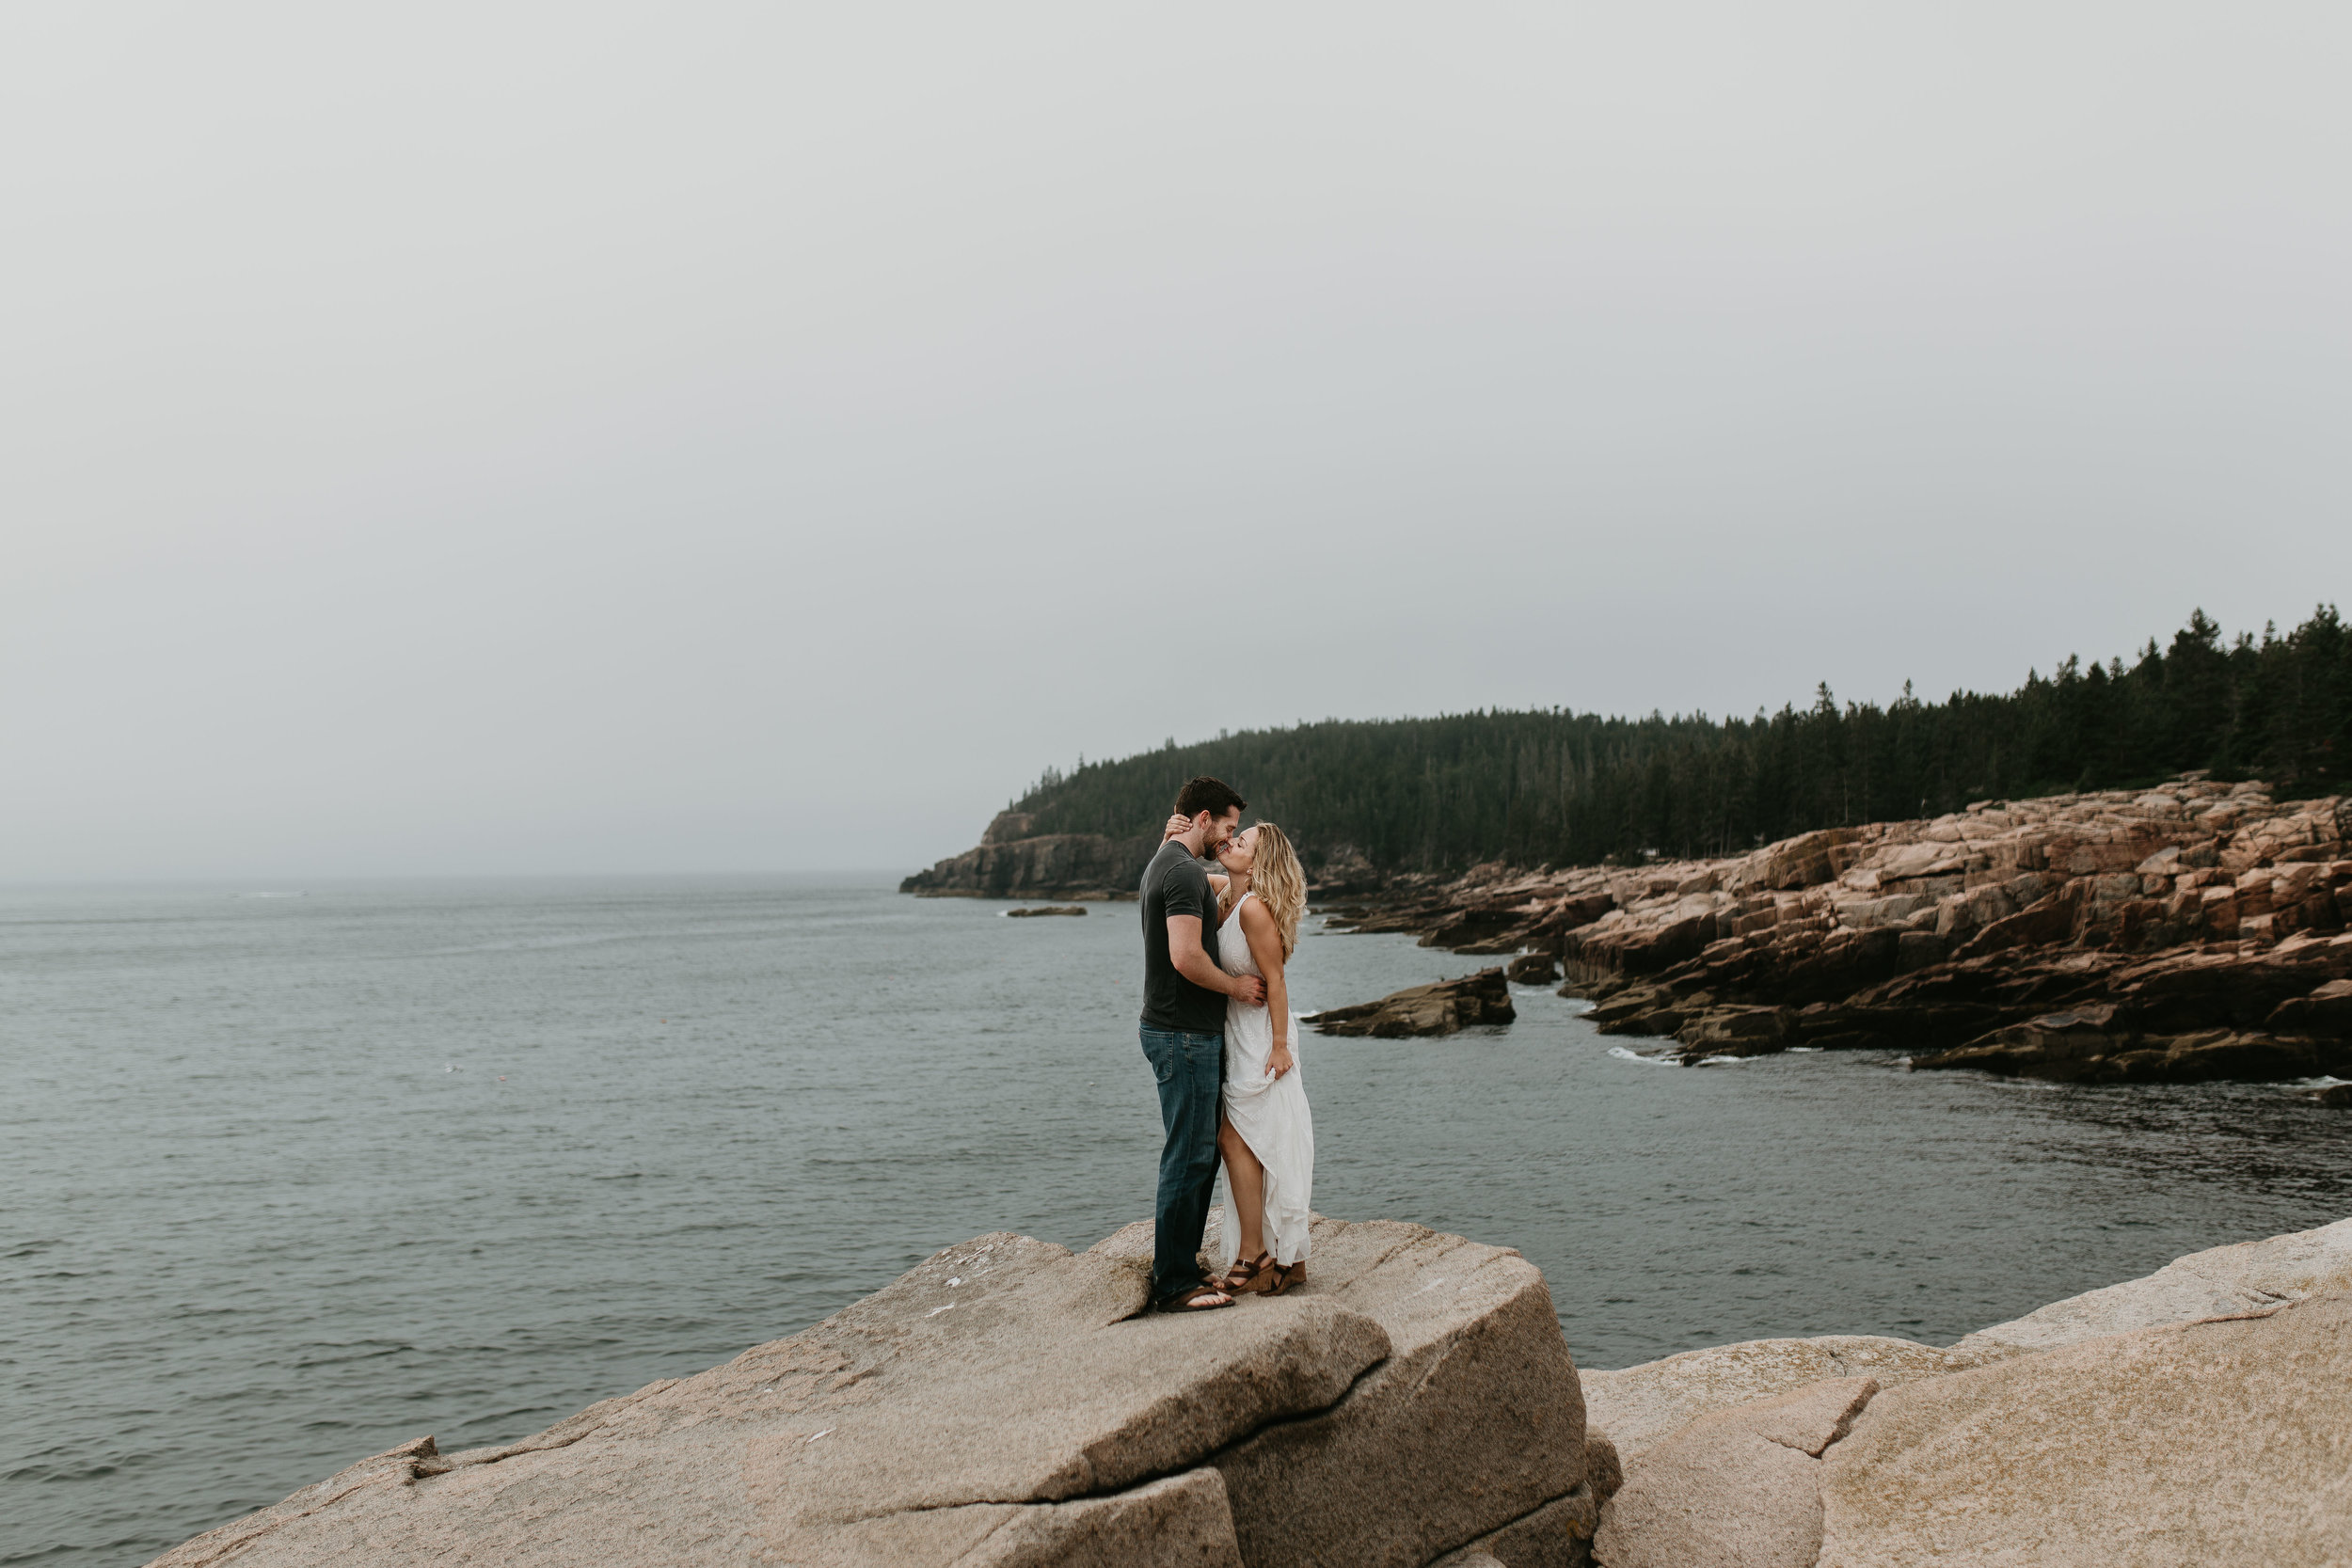 nicole-daacke-photography-acadia-national-park-adventurous-engagement-session-photos-otter-cliffs-forests-coastline-sand-beach-adventure-session-bar-harbor-mt-desert-island-elopement-fall-bass-harbor-lighthouse-wedding-maine-landscape-photographer-33.jpg